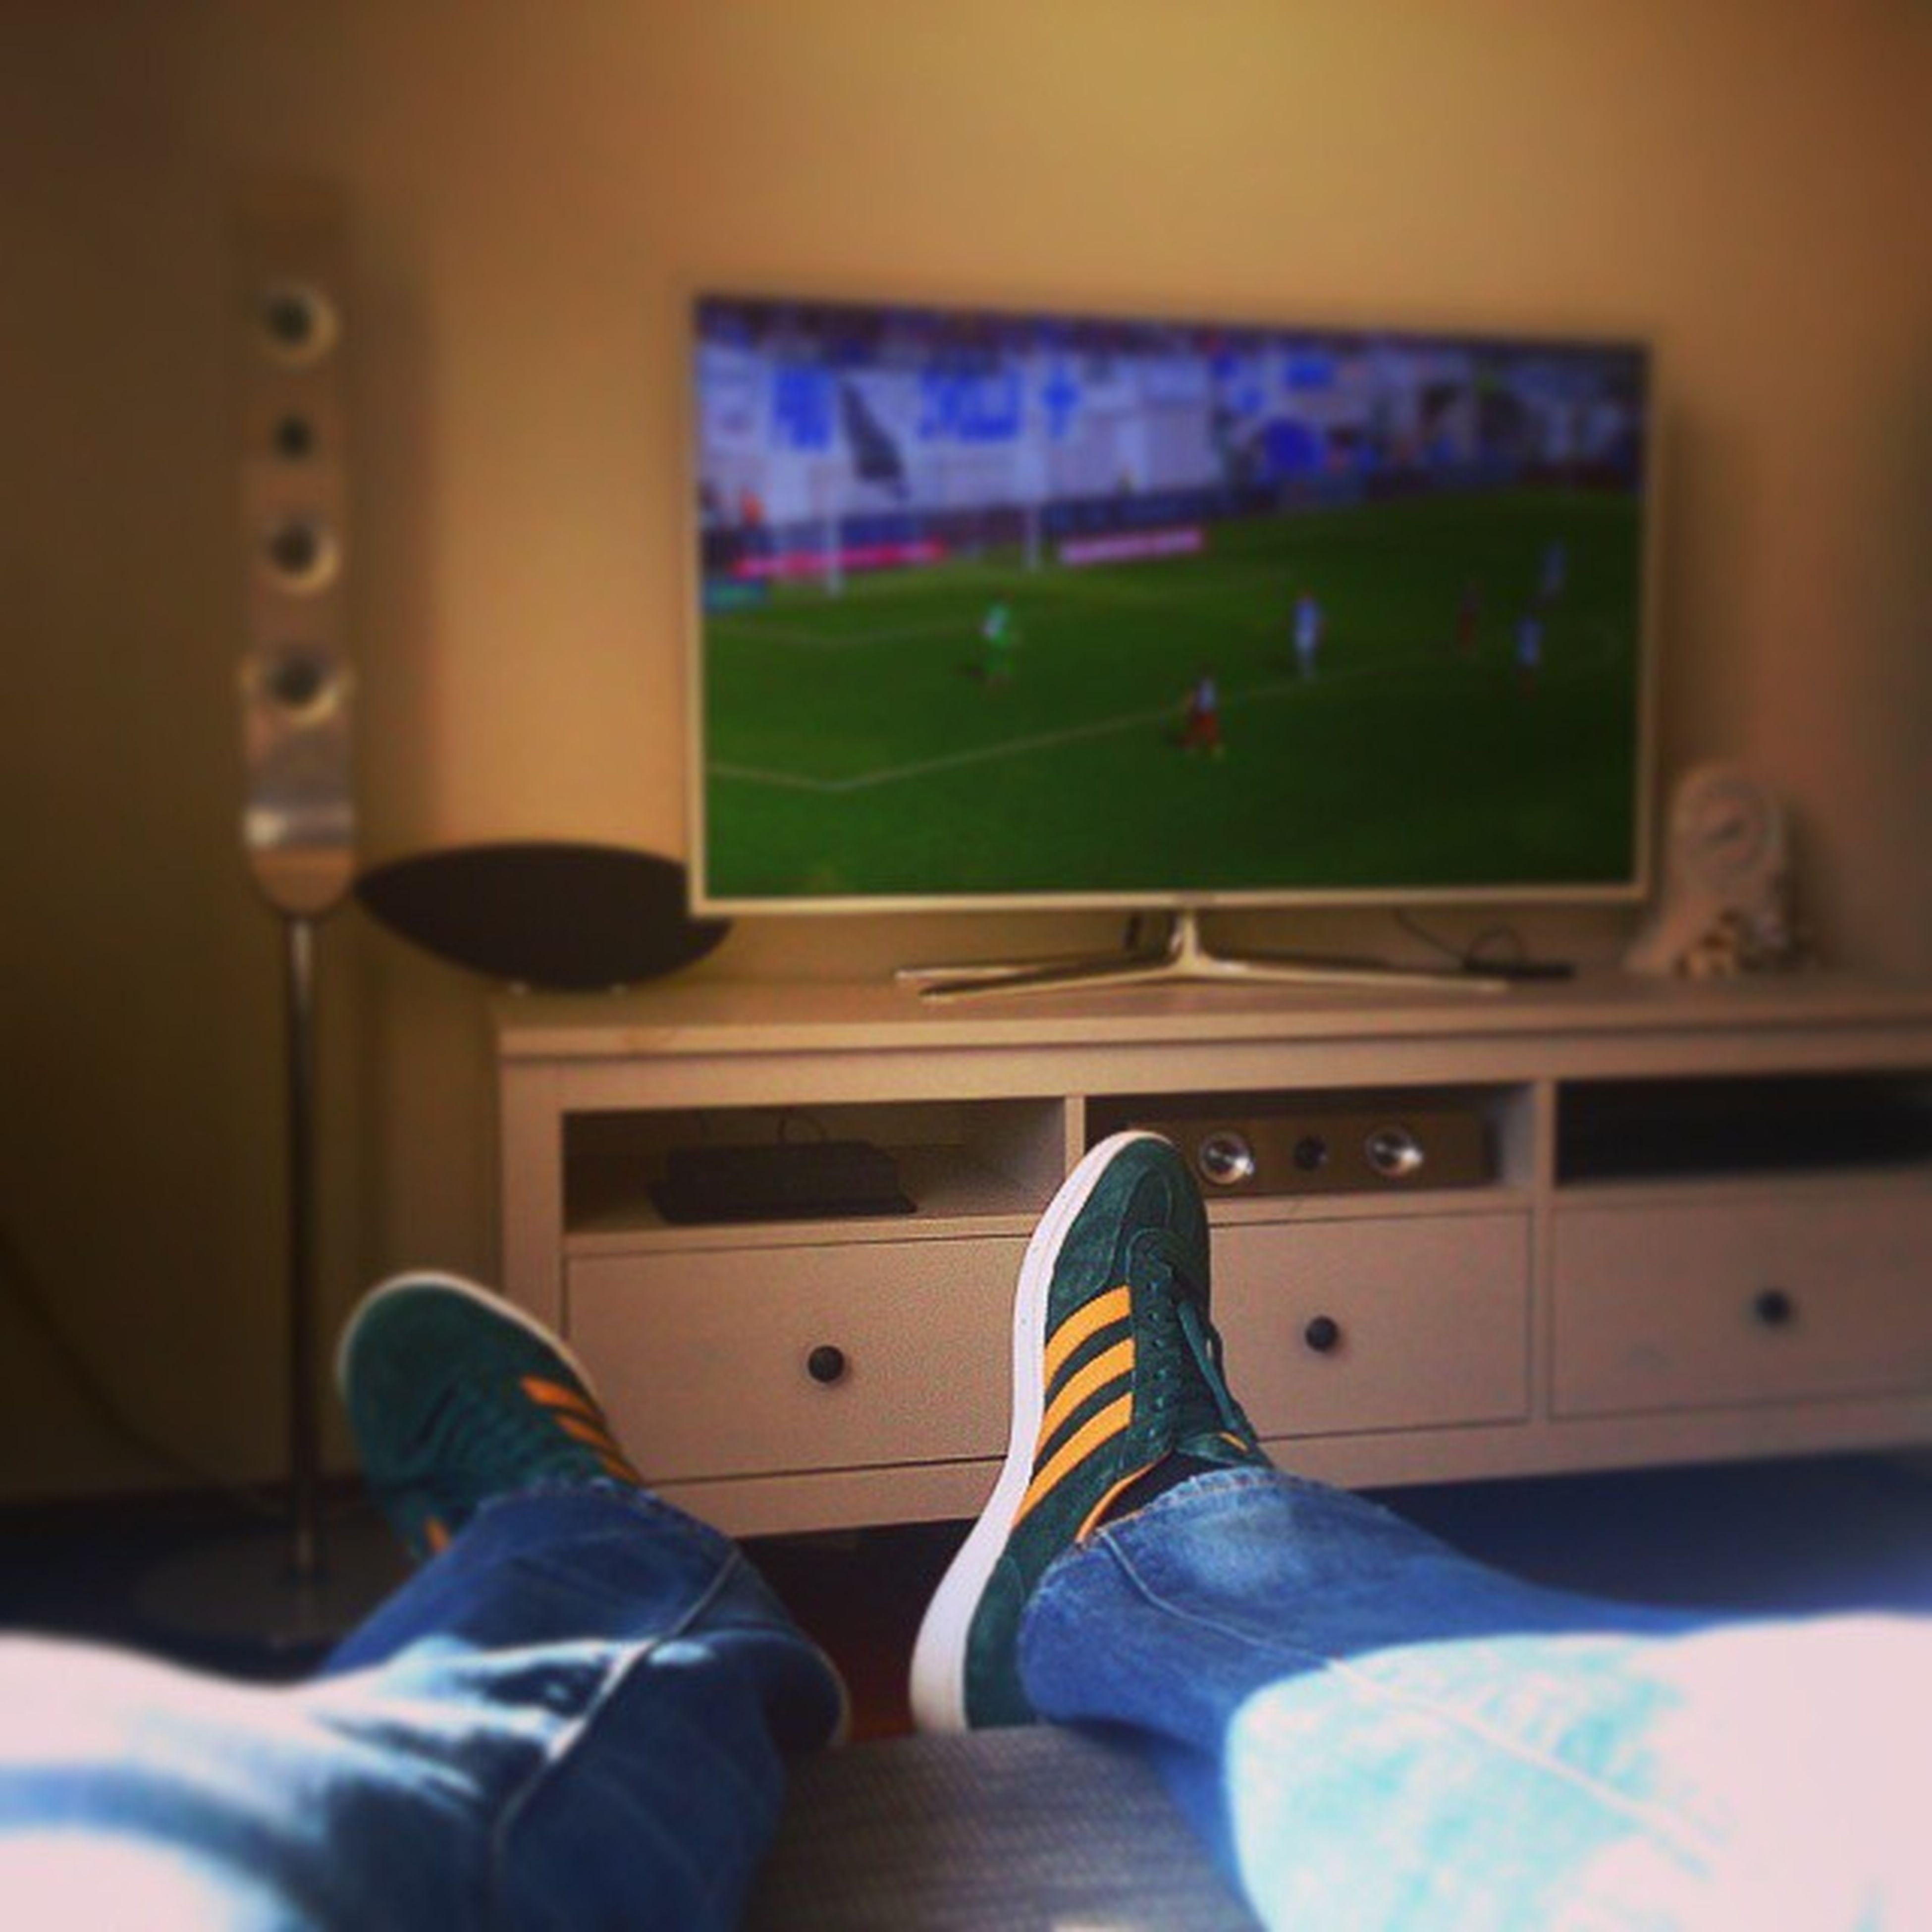 It's so easy to make a normal sunday a spezial sunday Instacasualco Adidasspezial Smalladidascollector Adidas Sunday